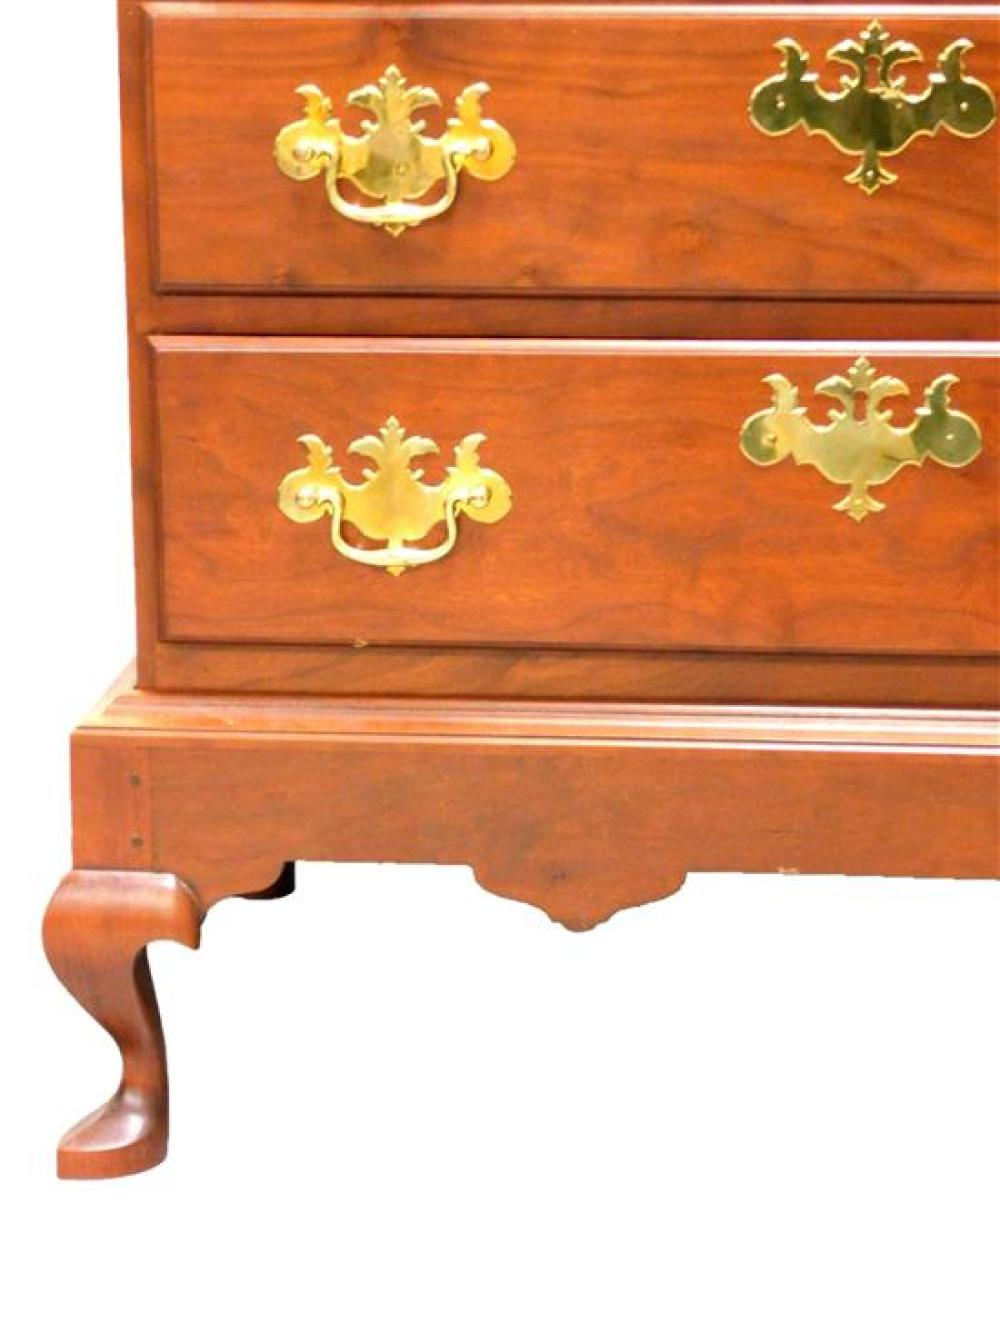 Eldred Wheeler of Hingham, Mass., Connecticut River Valley chest on frame, reproduction of a late 18th C. form, unusual scalloped to...